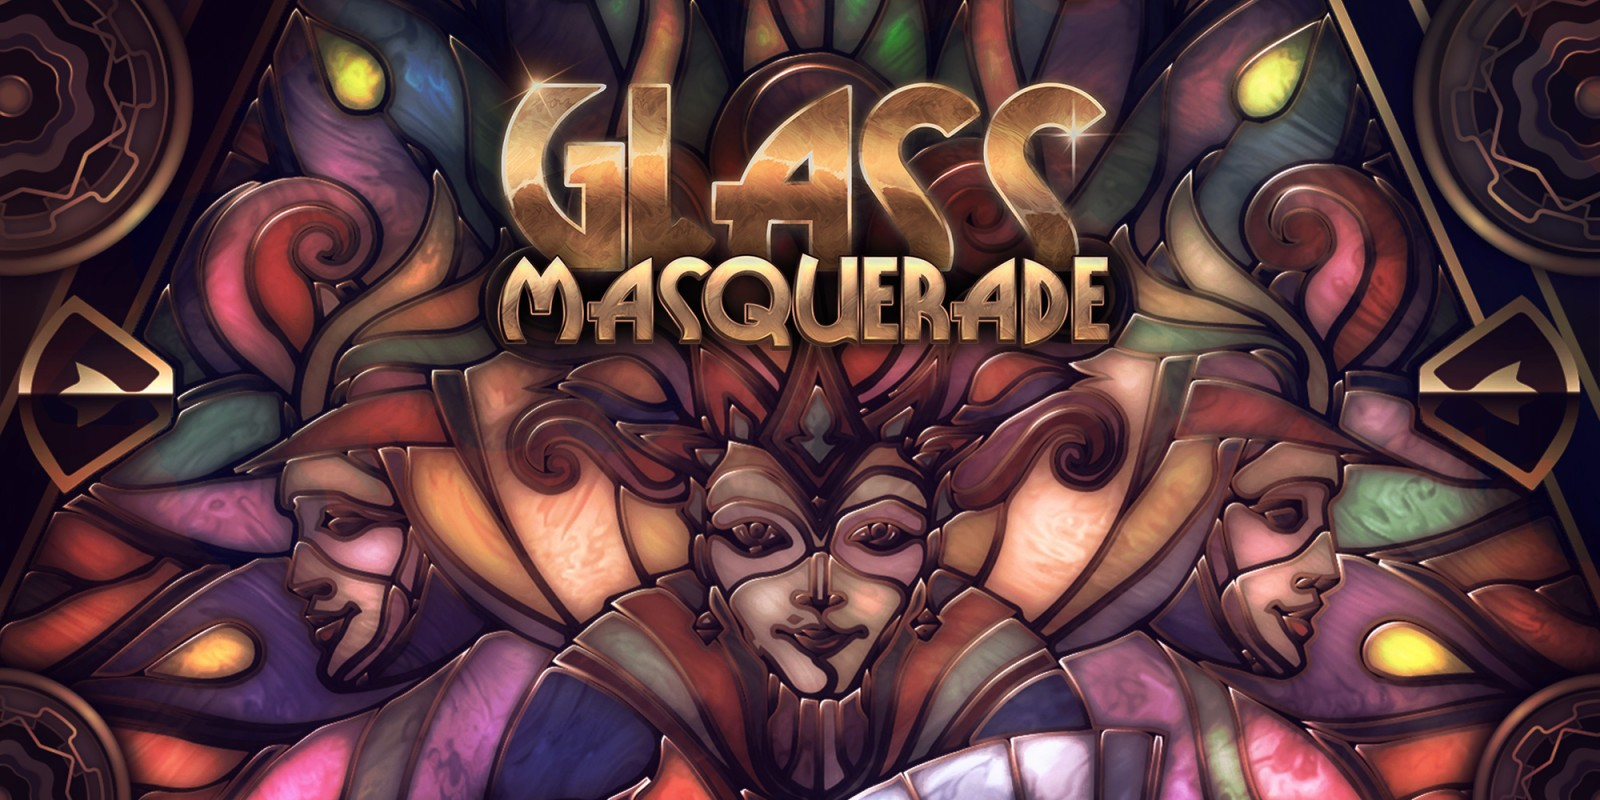 Glass Masquerade